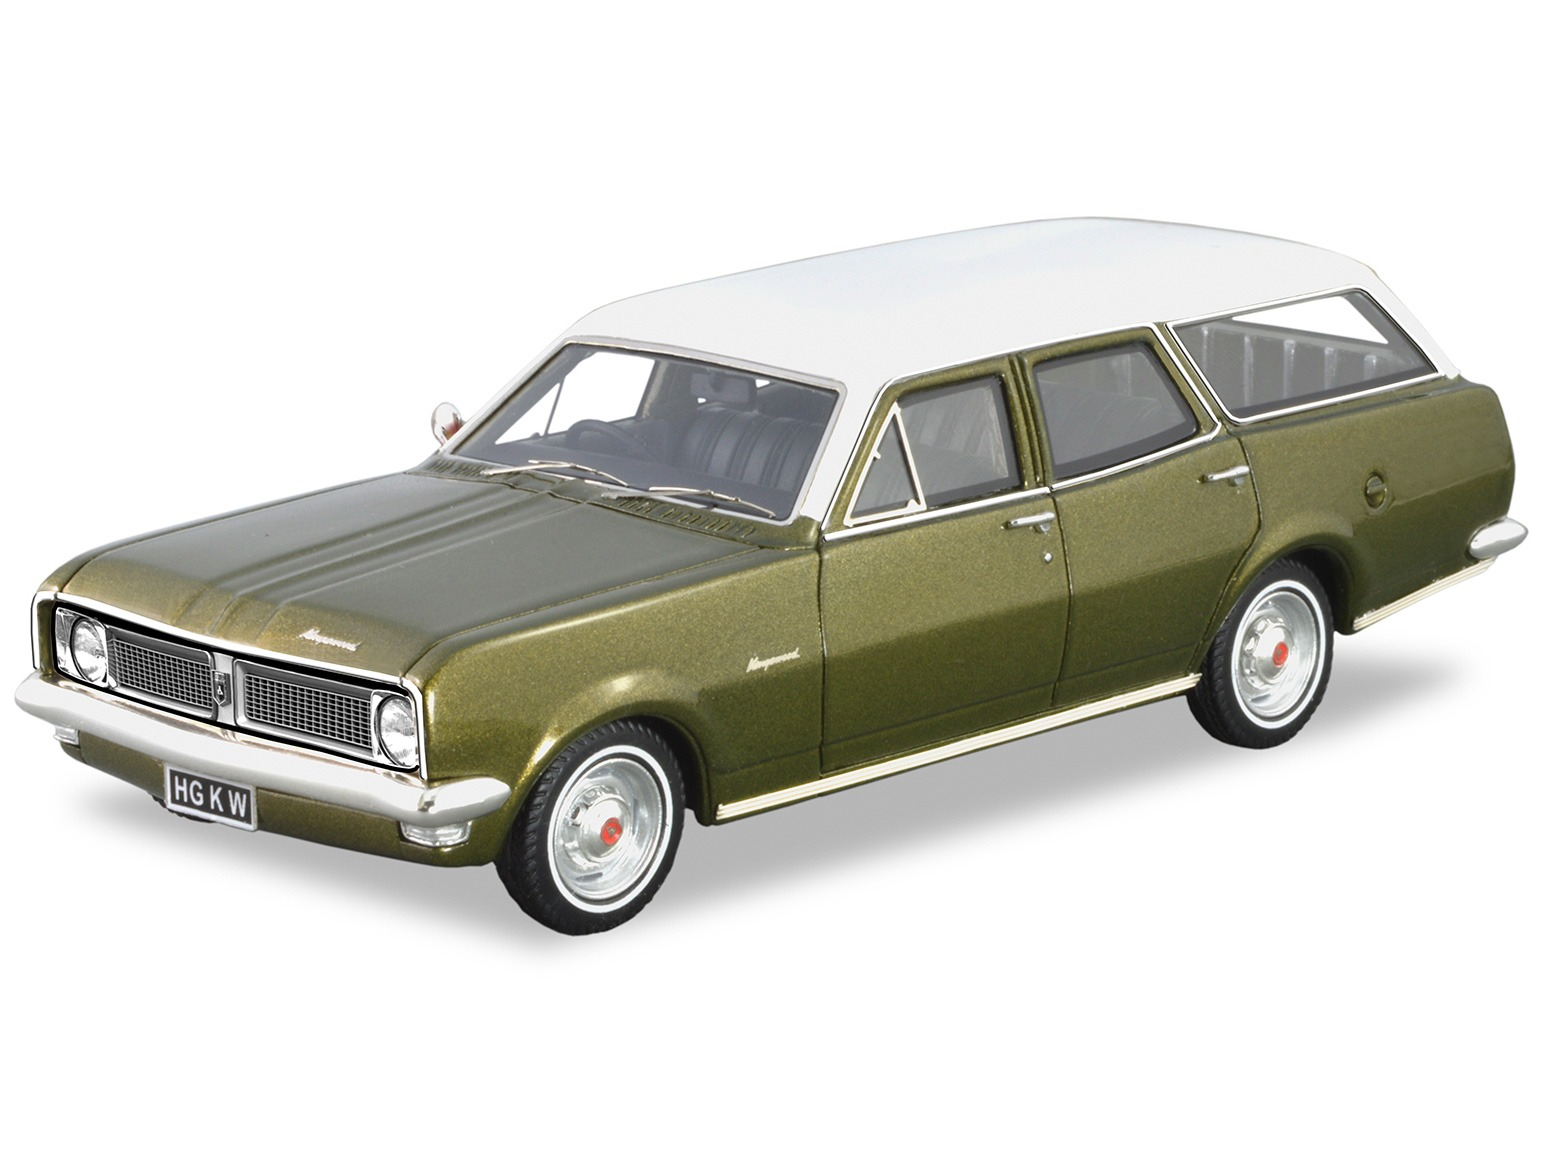 1970 HG Kingswood Wagon – Verdoro Green Metallic / Kashmir White